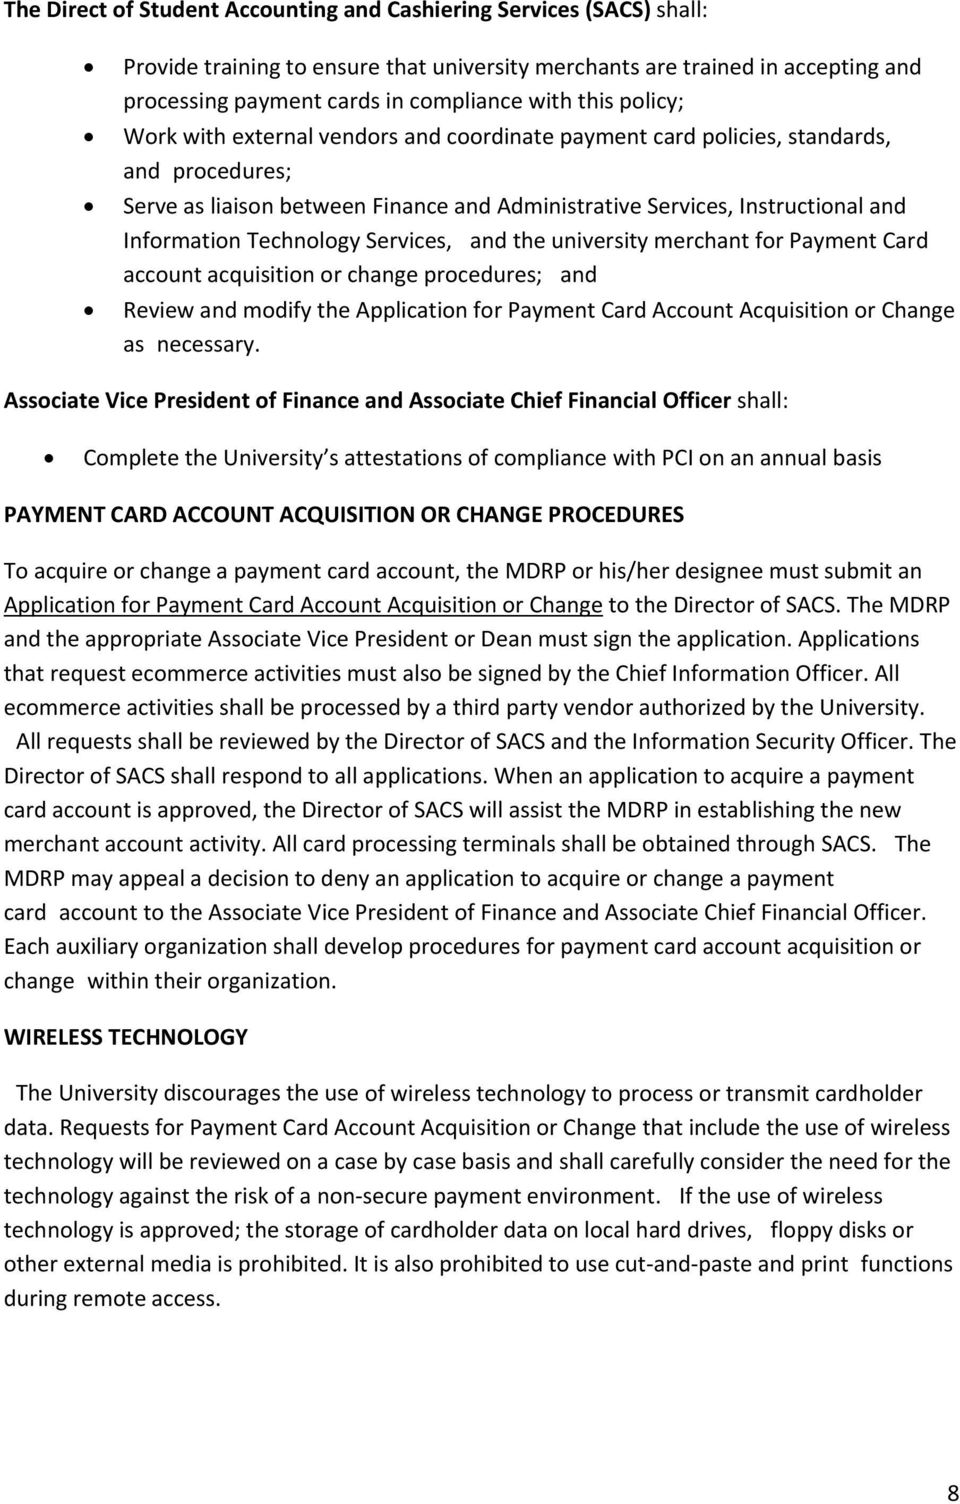 Technology Services, and the university merchant for Payment Card account acquisition or change procedures; and Review and modify the Application for Payment Card Account Acquisition or Change